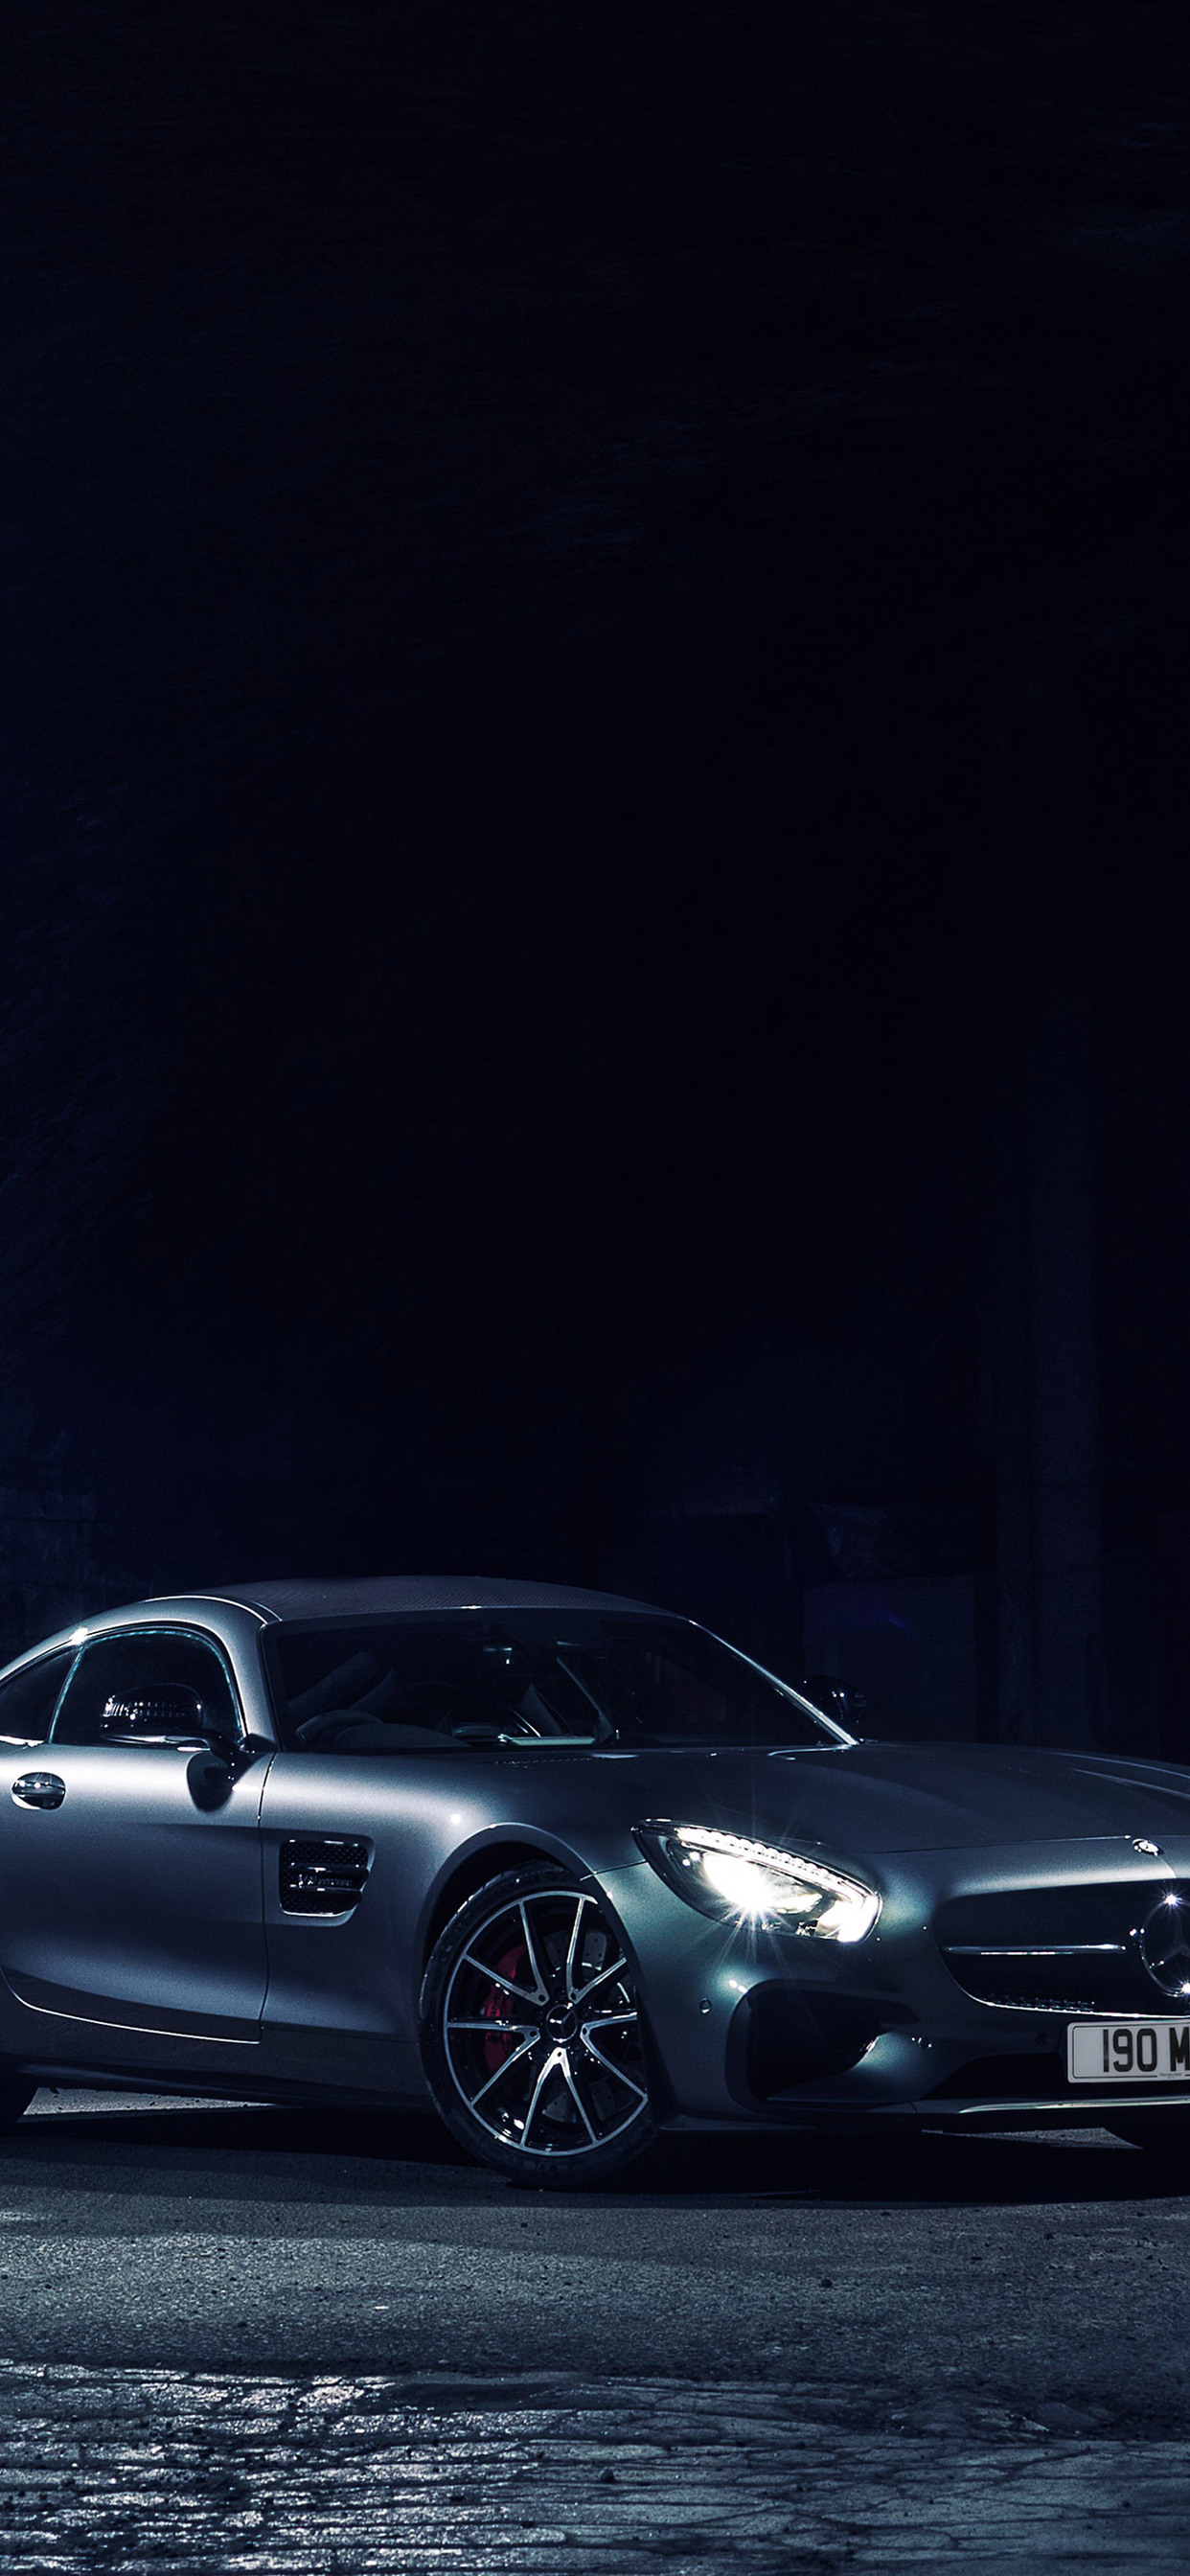 1242x2688 2018 Mercedes Benz Amg Gt Iphone Xs Max Hd 4k Wallpapers